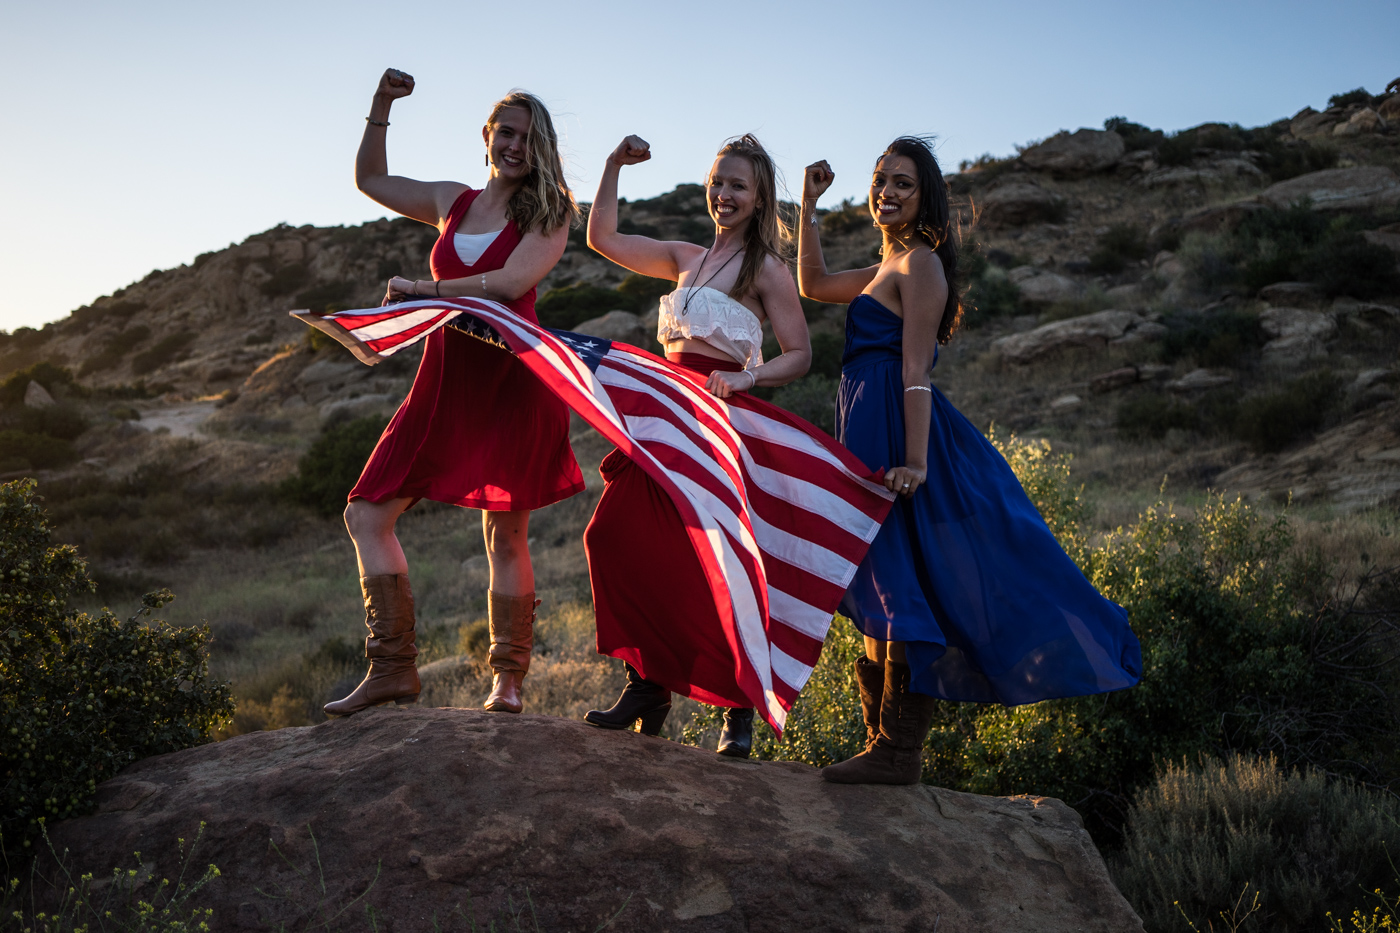 American women with waving flag portrait in grassy mountain landscape at sunset in rosy the riveter pose